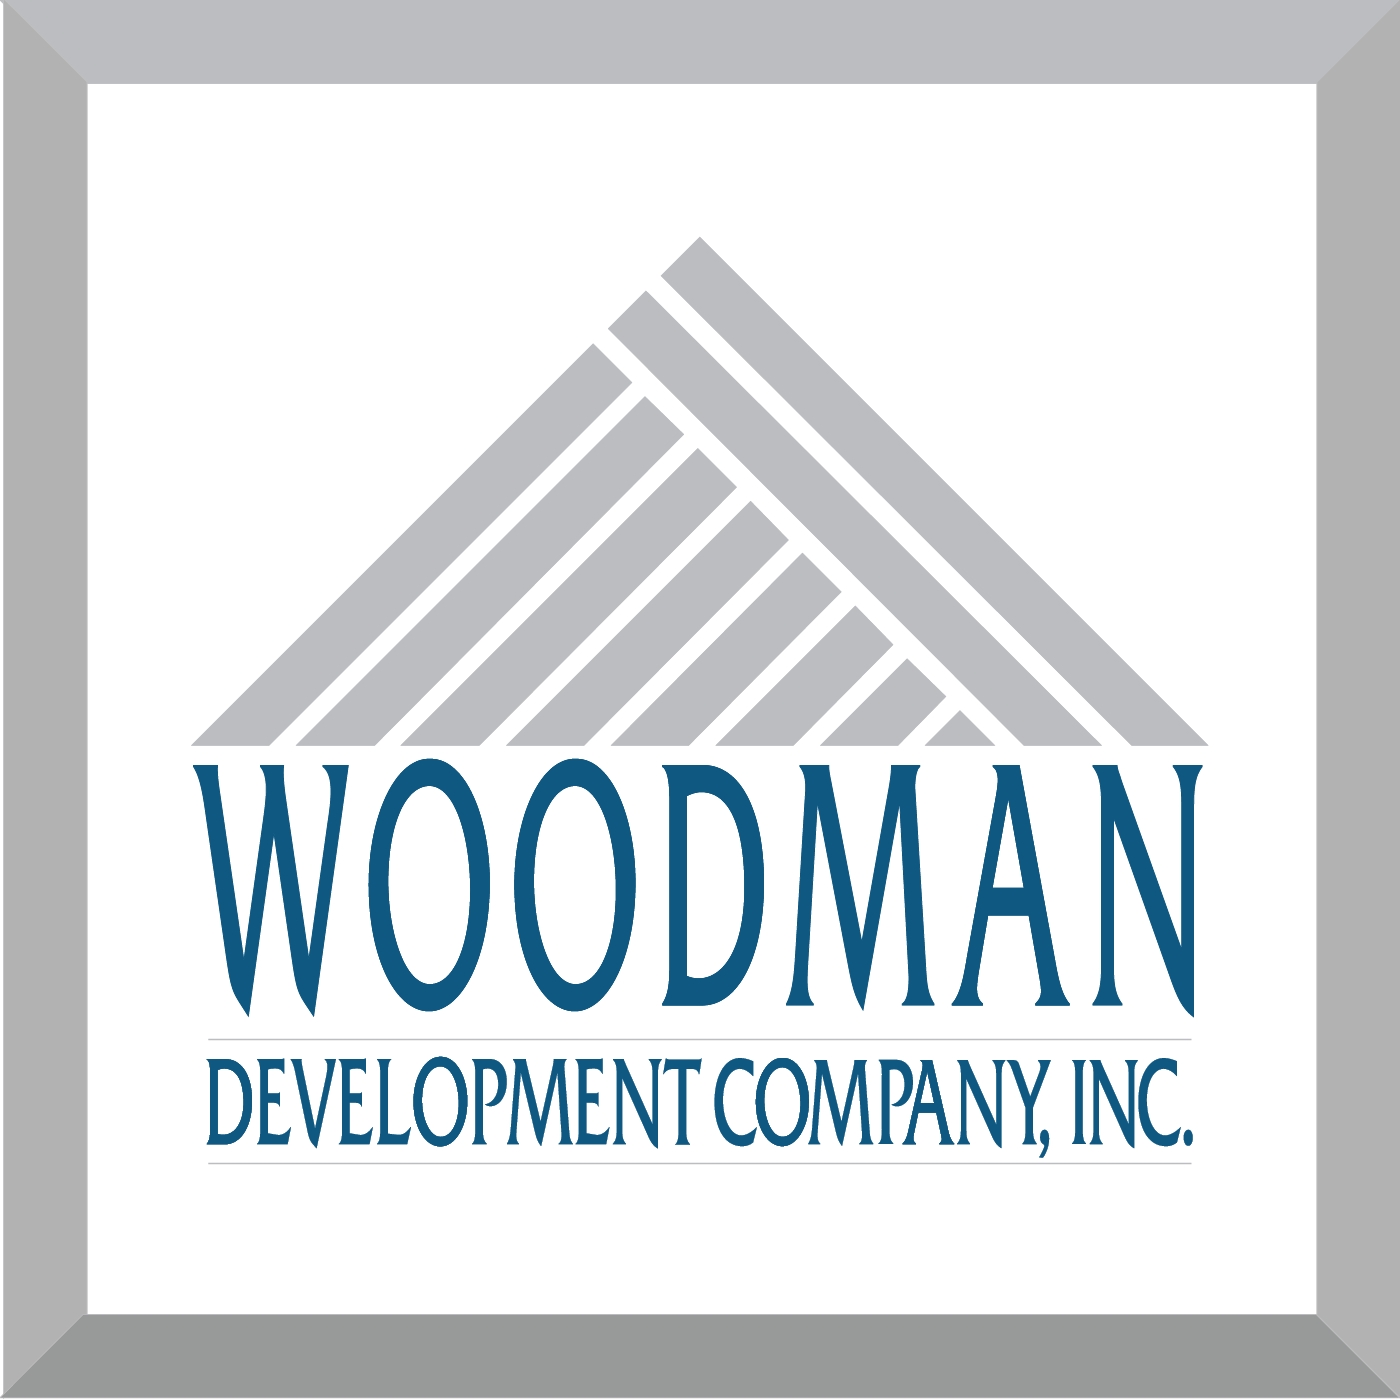 Woodman Development Company